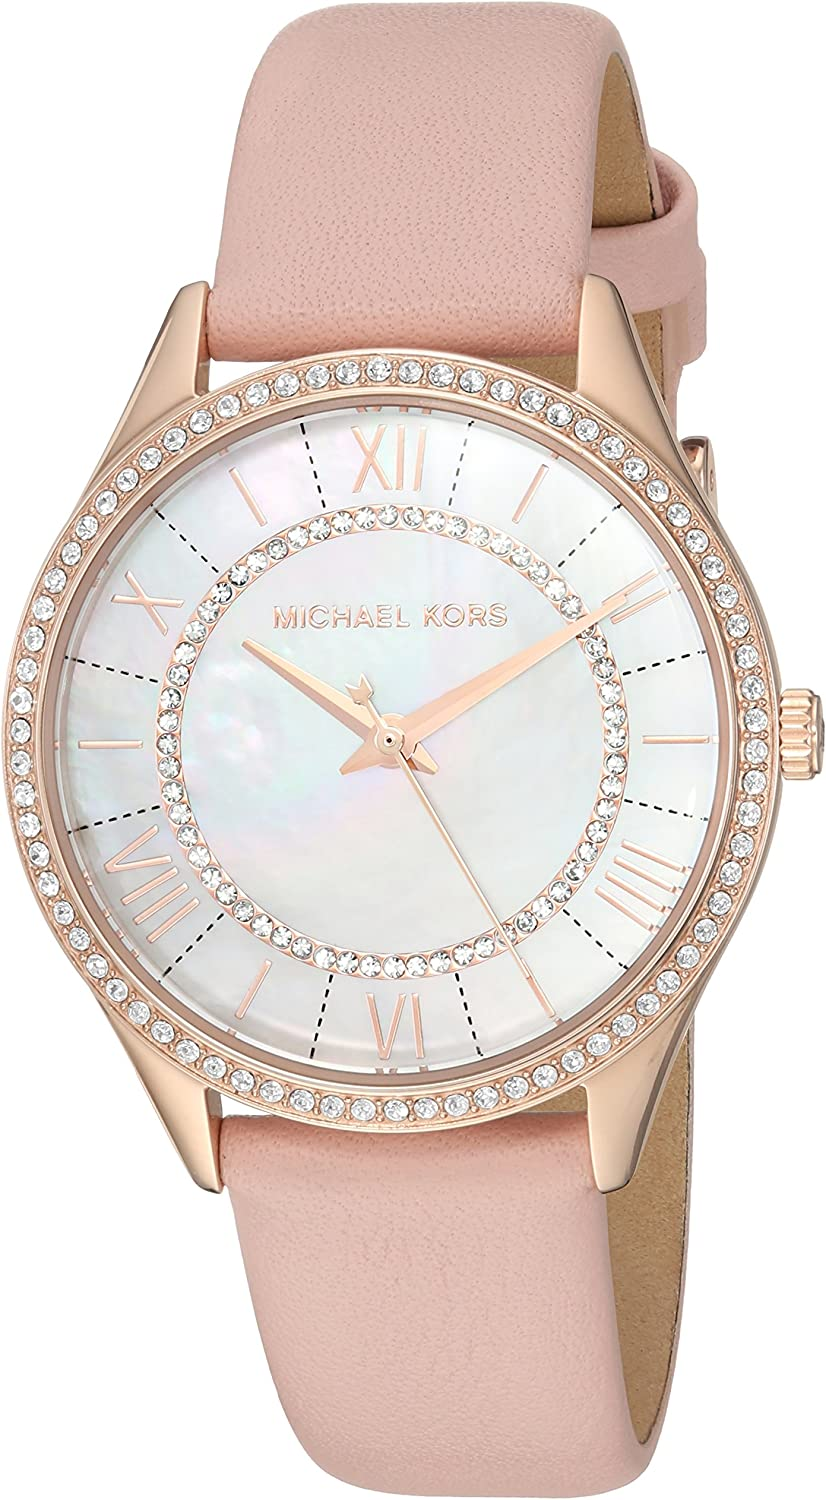 Michael Kors Women s Lauryn Three Hand Quartz Movement Watch